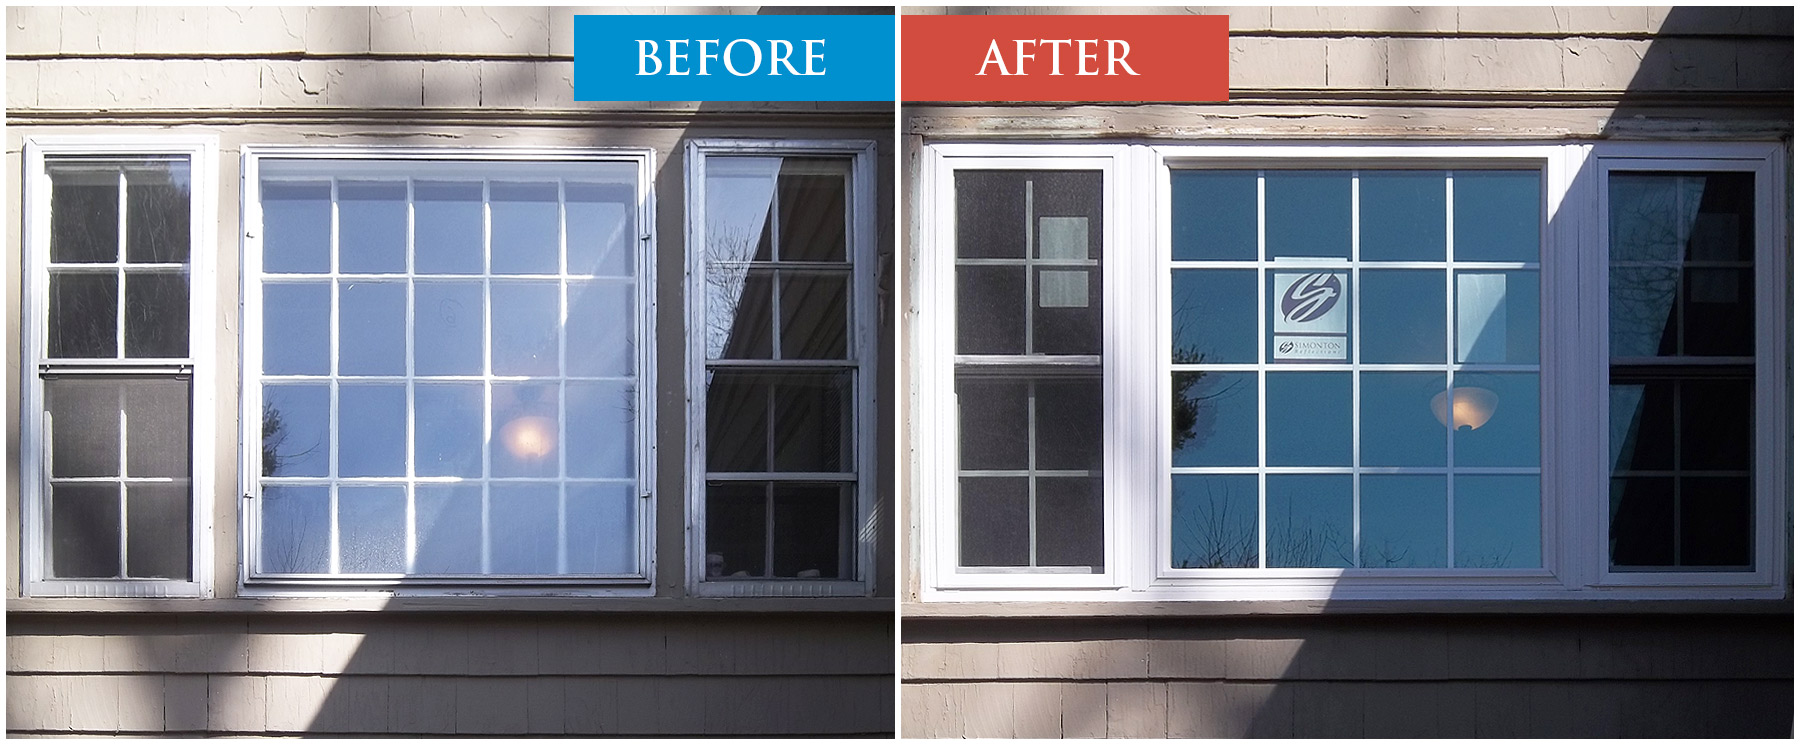 Window Replacement Services in Marlborough, MA